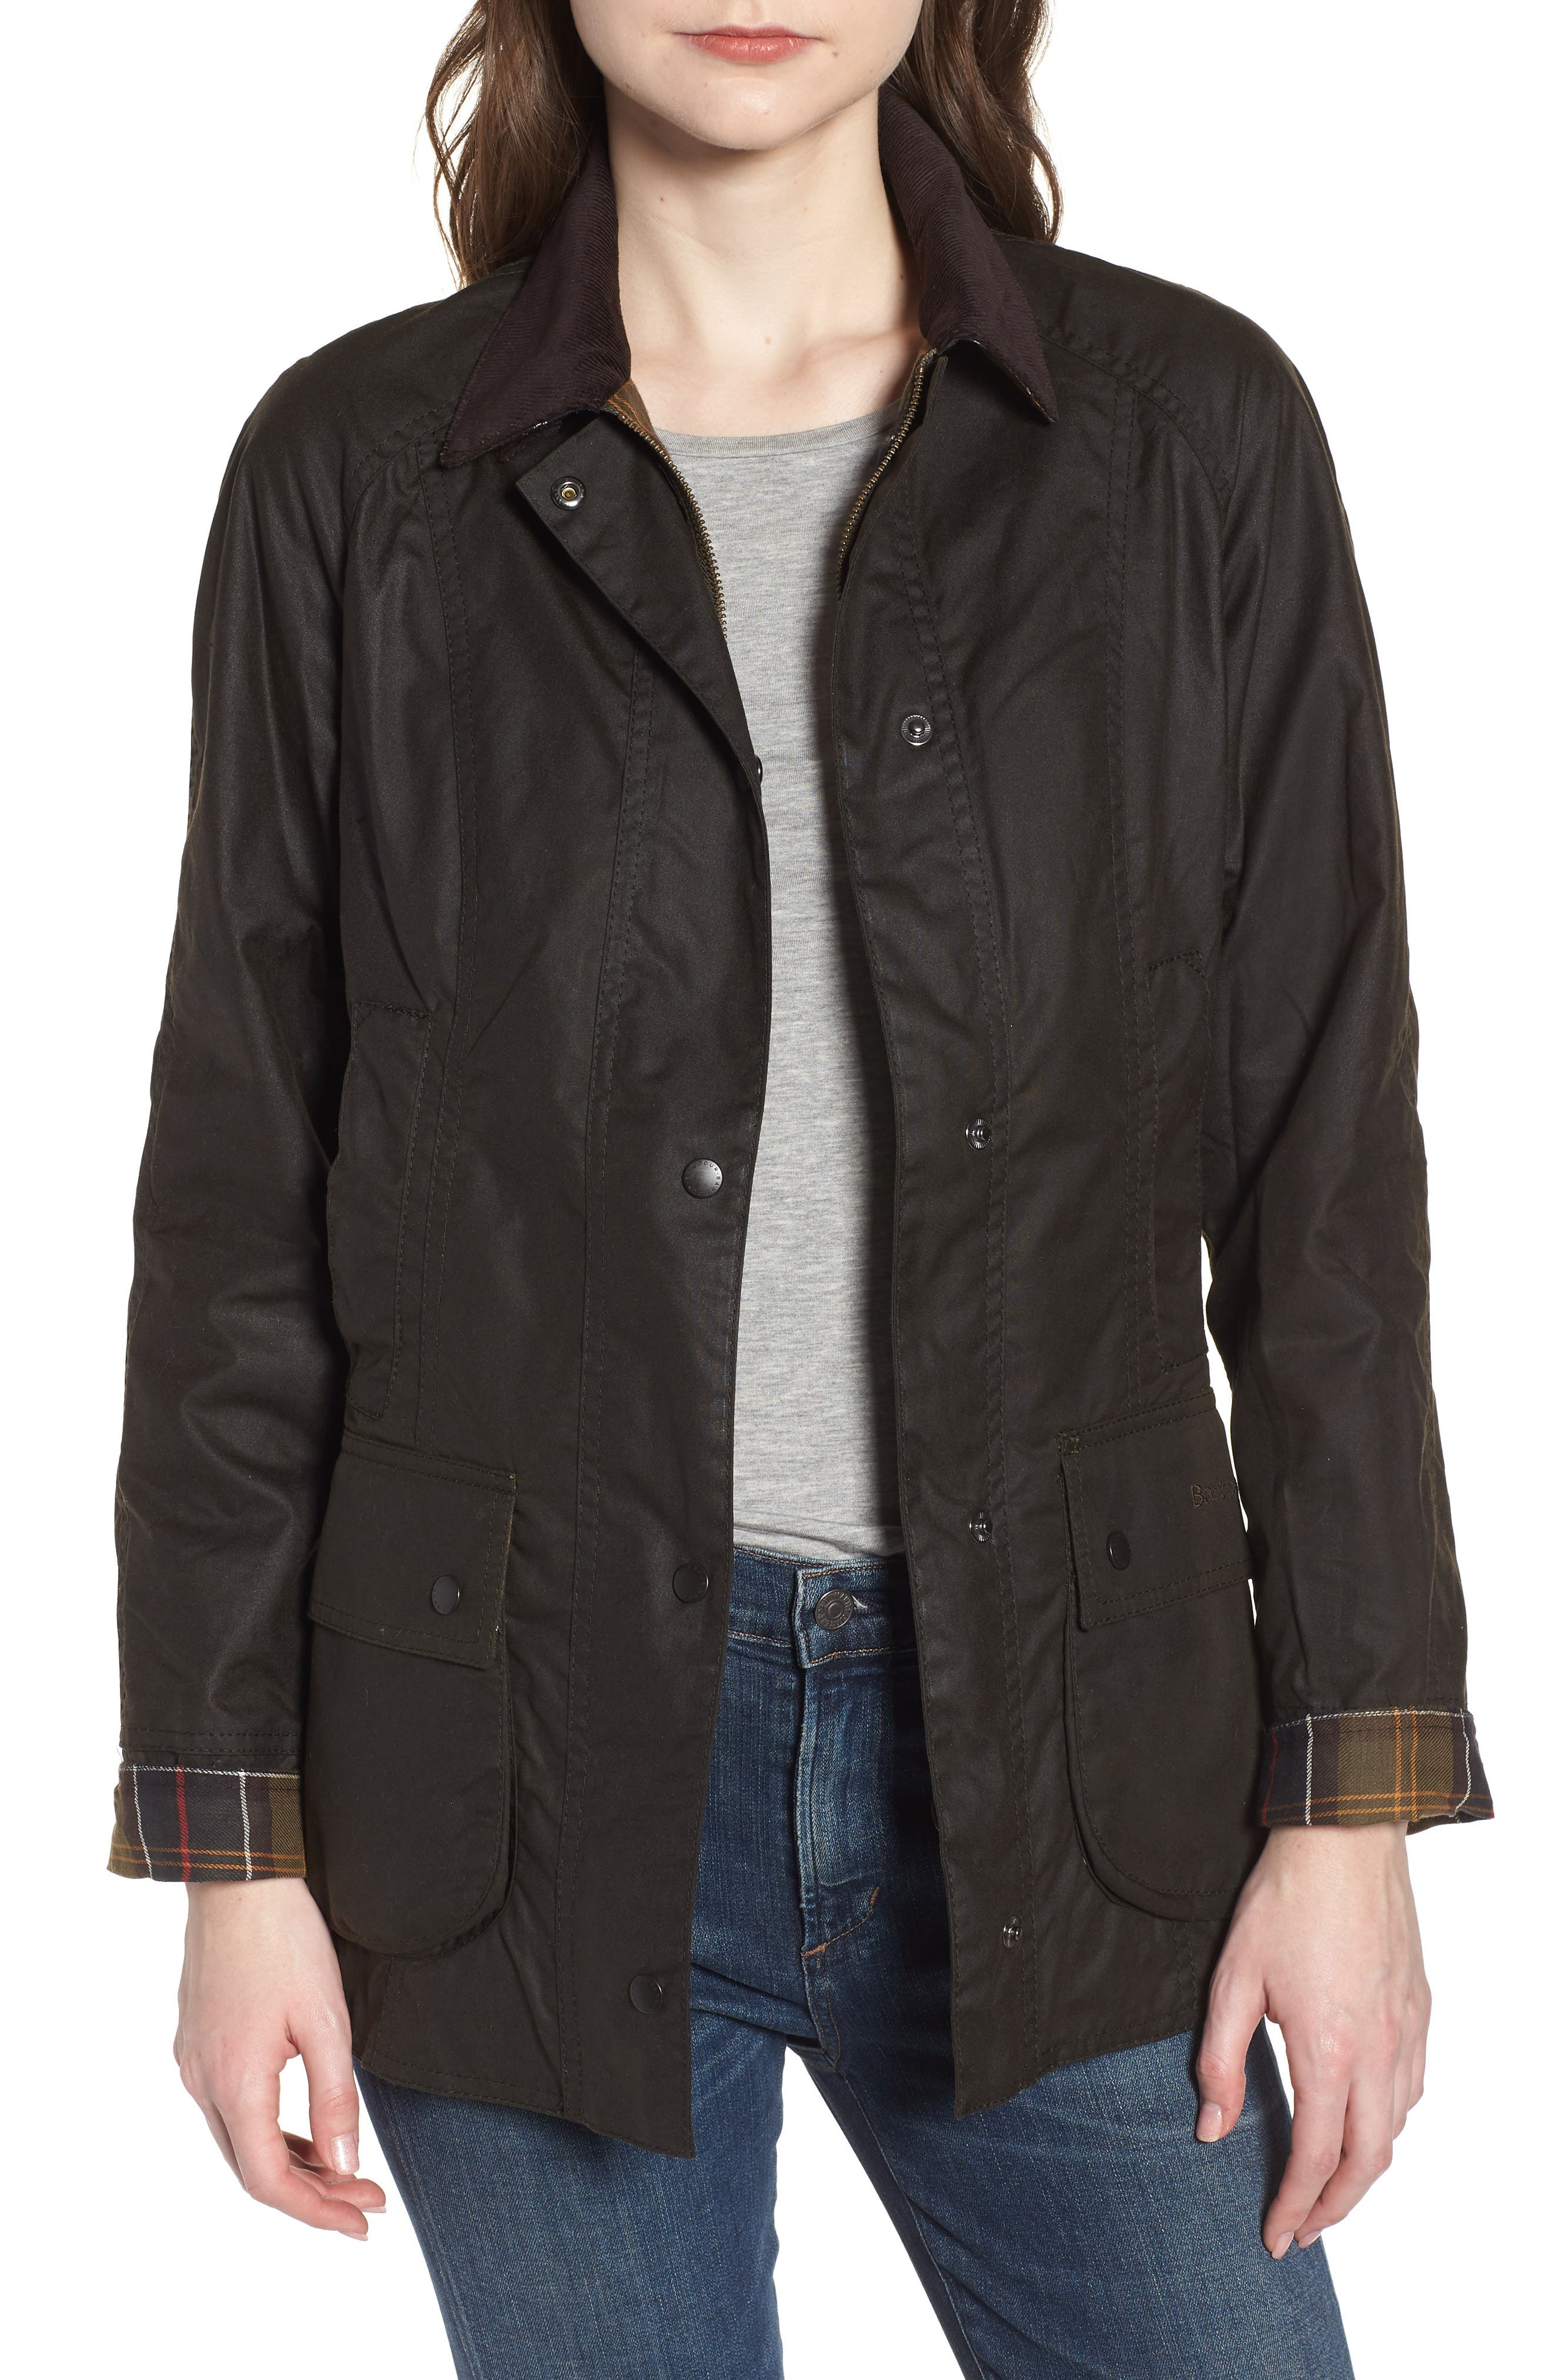 BARBOUR Beadnell Waxed Cotton Jacket, Main, color, 300